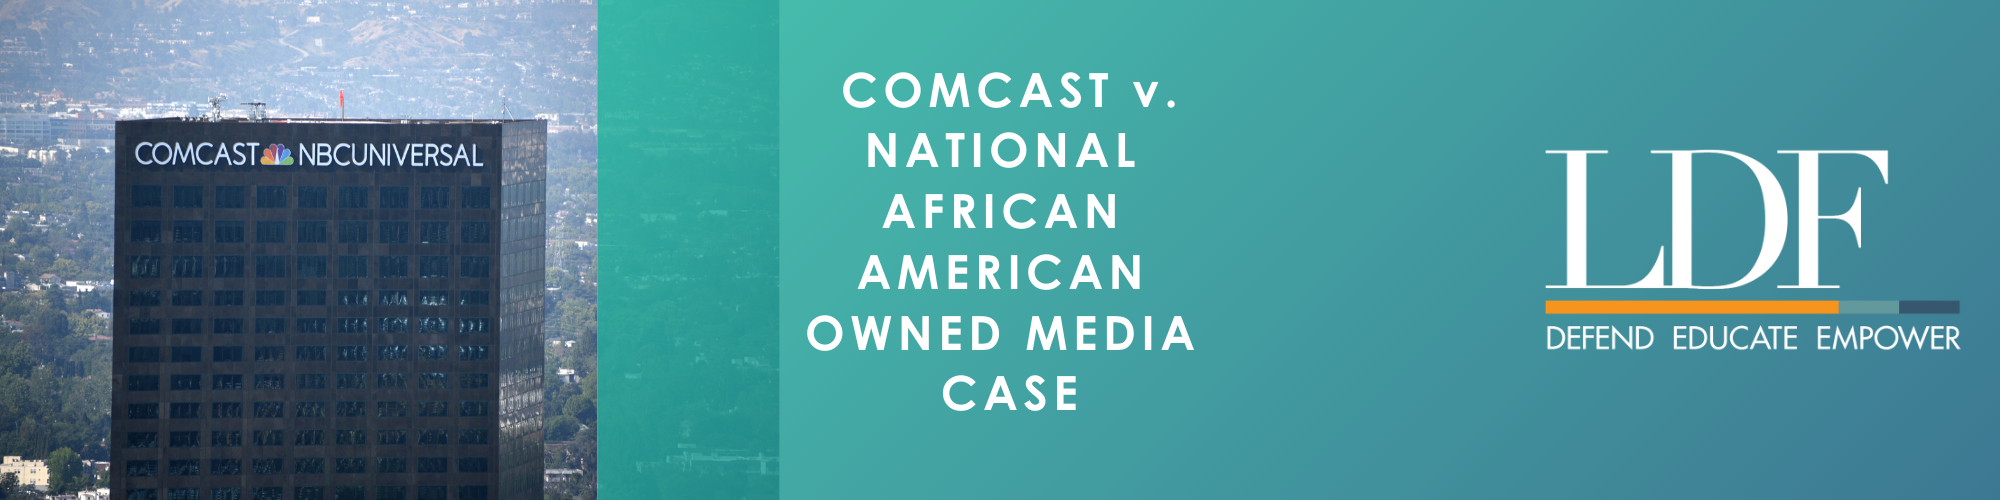 Comcast Corp. v. National Association of African American-Owned Media